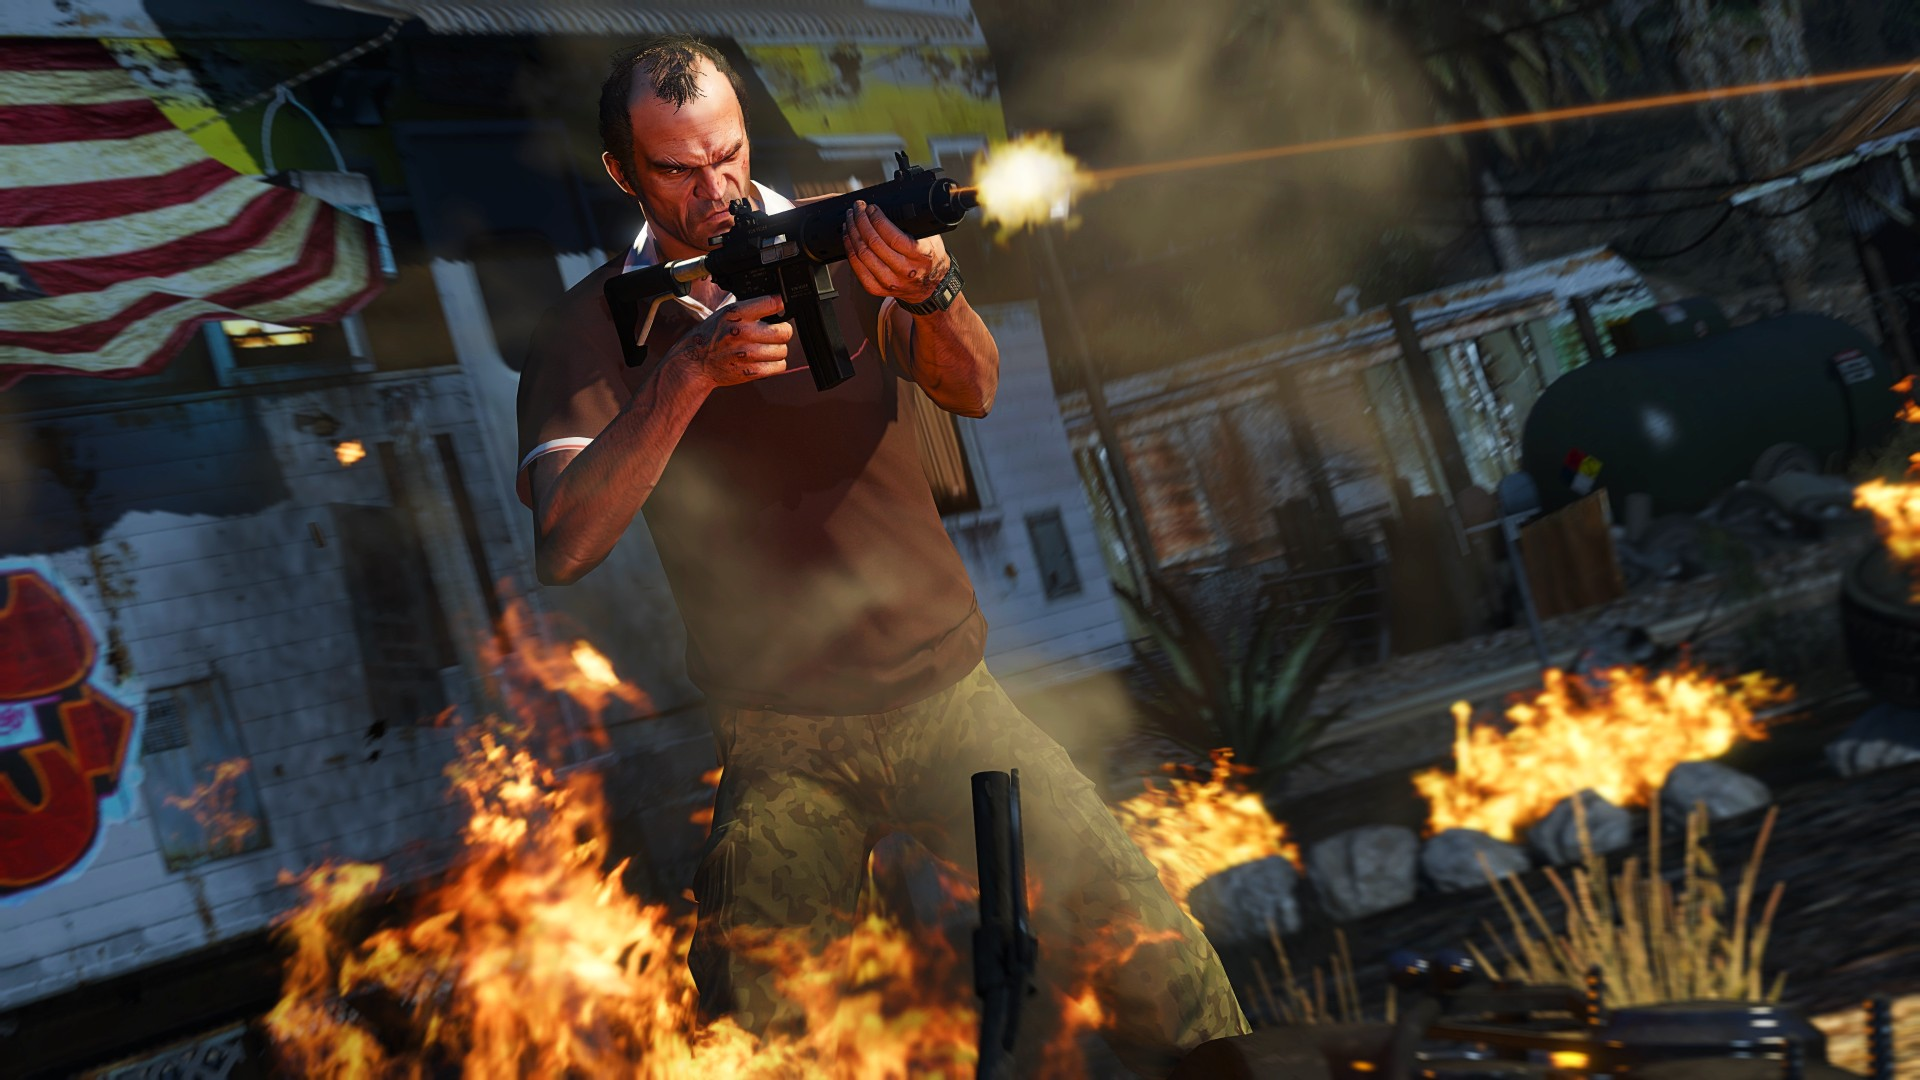 GTA Online players won't let this guy perform Hamlet